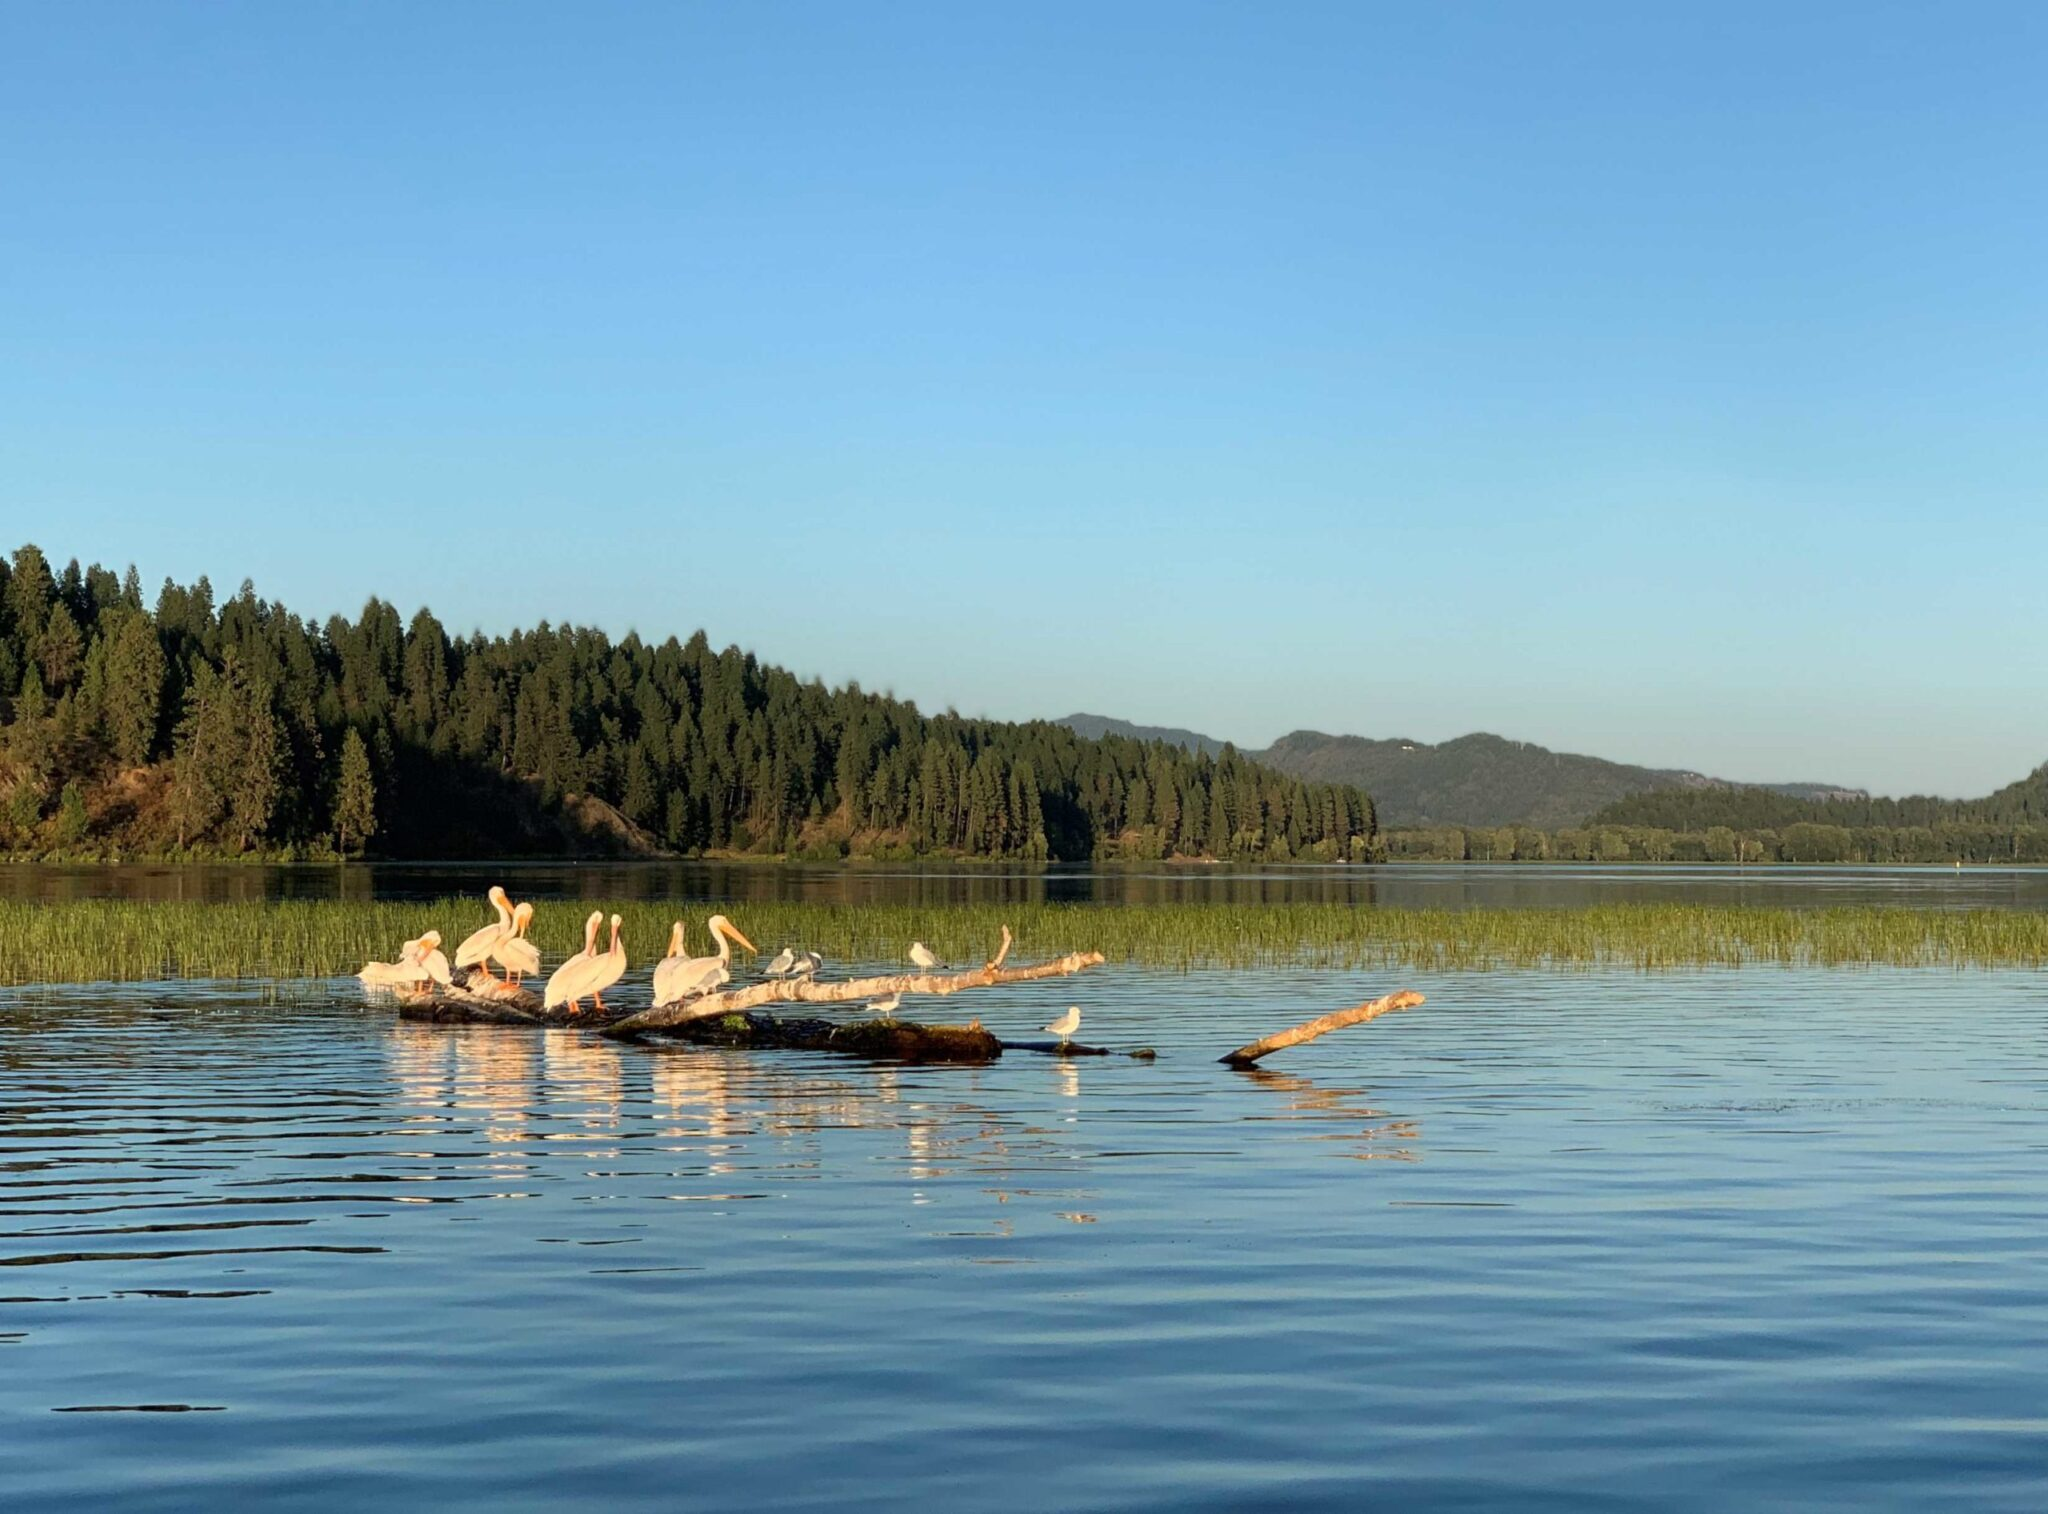 A group of pelicans on a submerged tree on lake.